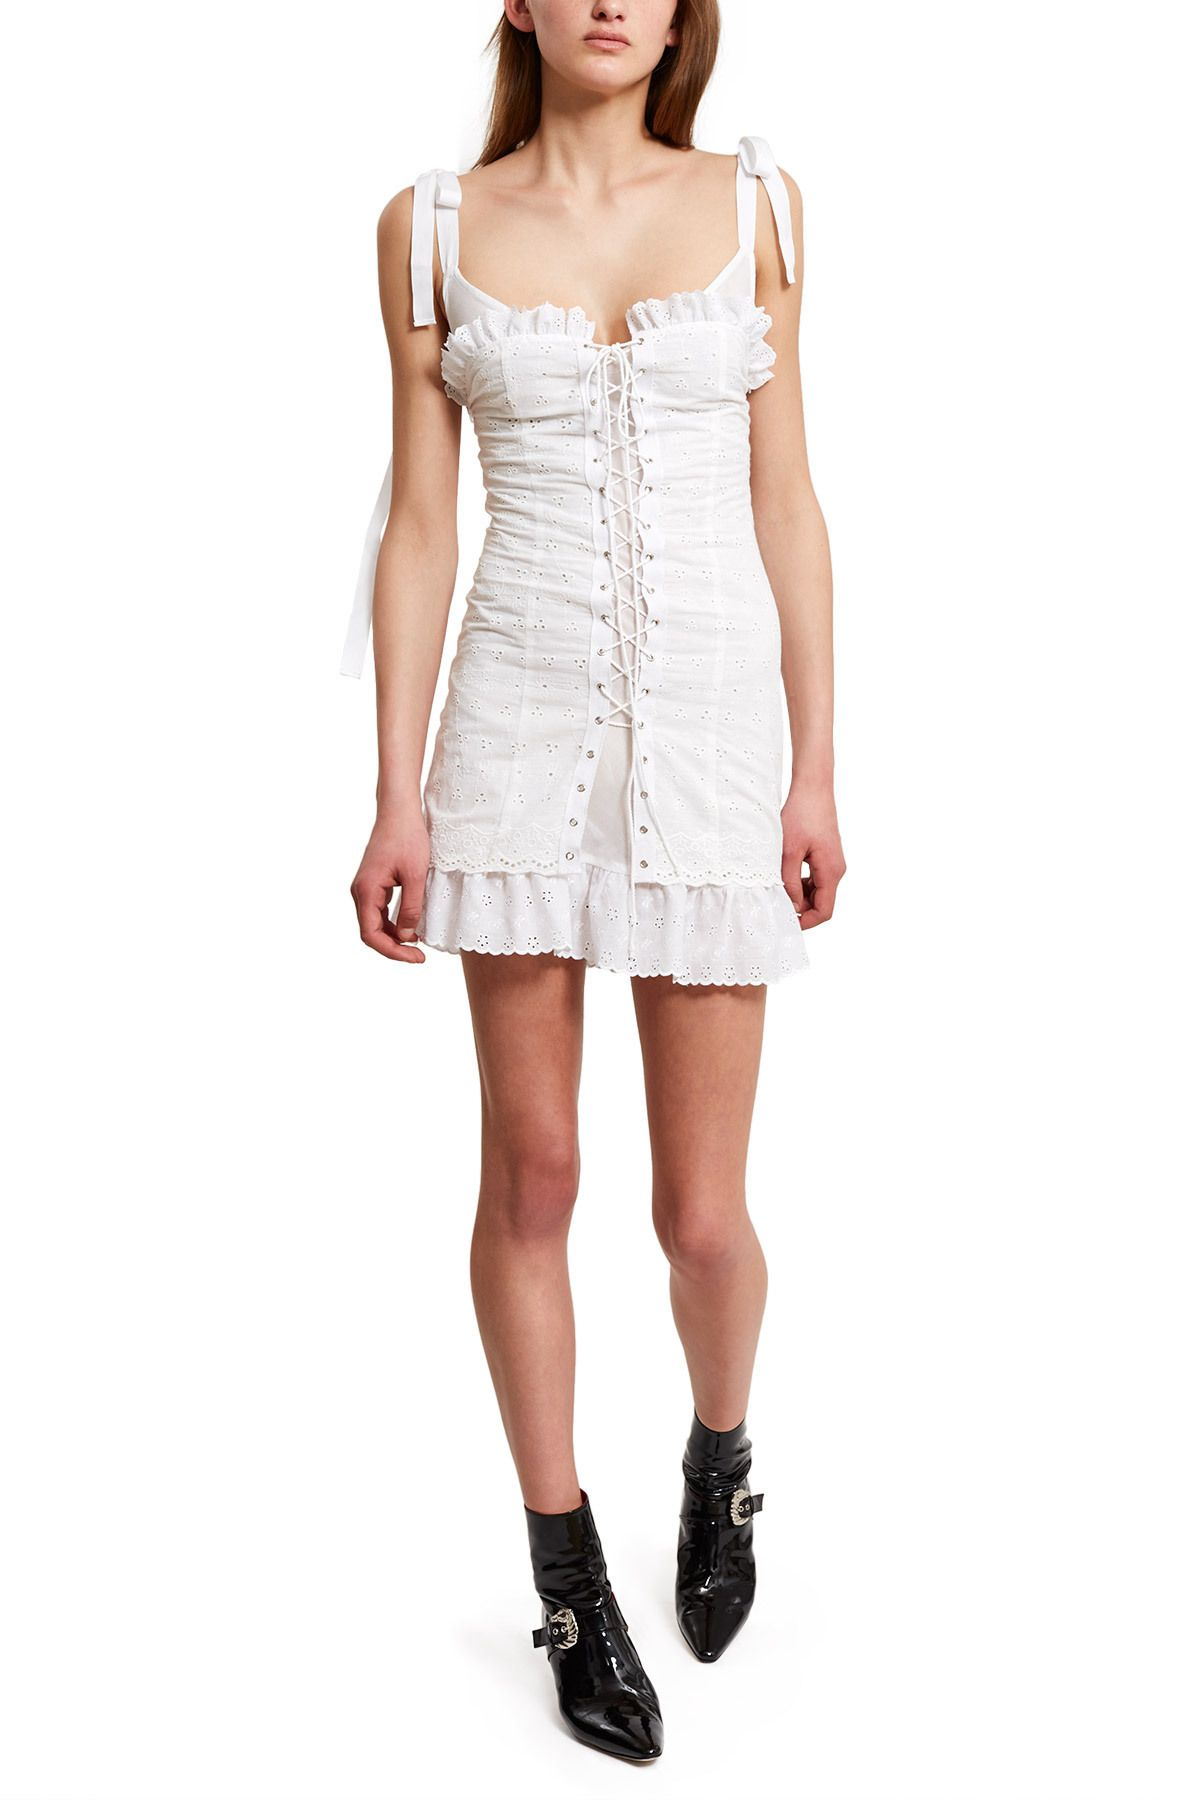 Daisy Broderie Lace Up Corset Dress From Their 2016 Human Emotion Collection Stylist Outfit Corset Dress Stunning Outfits [ 1800 x 1200 Pixel ]